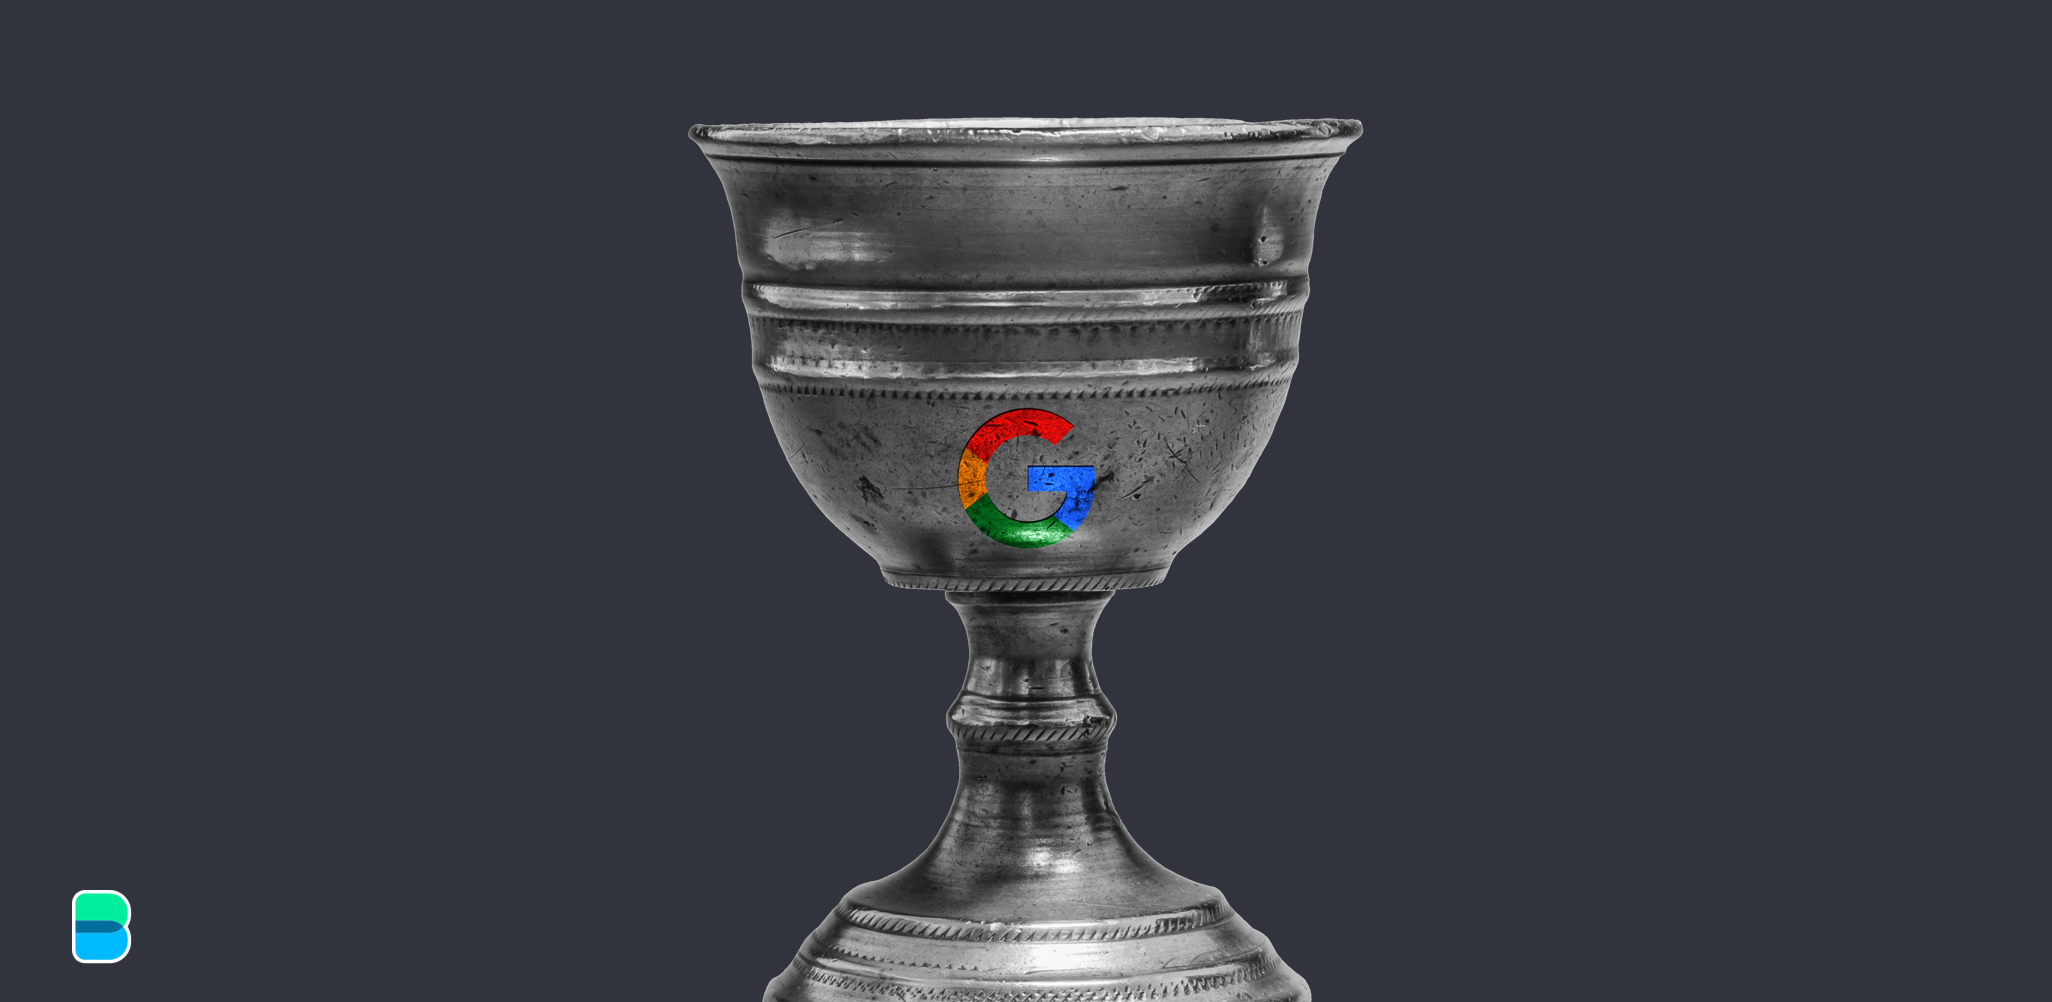 Google committed to build the holy grail of search